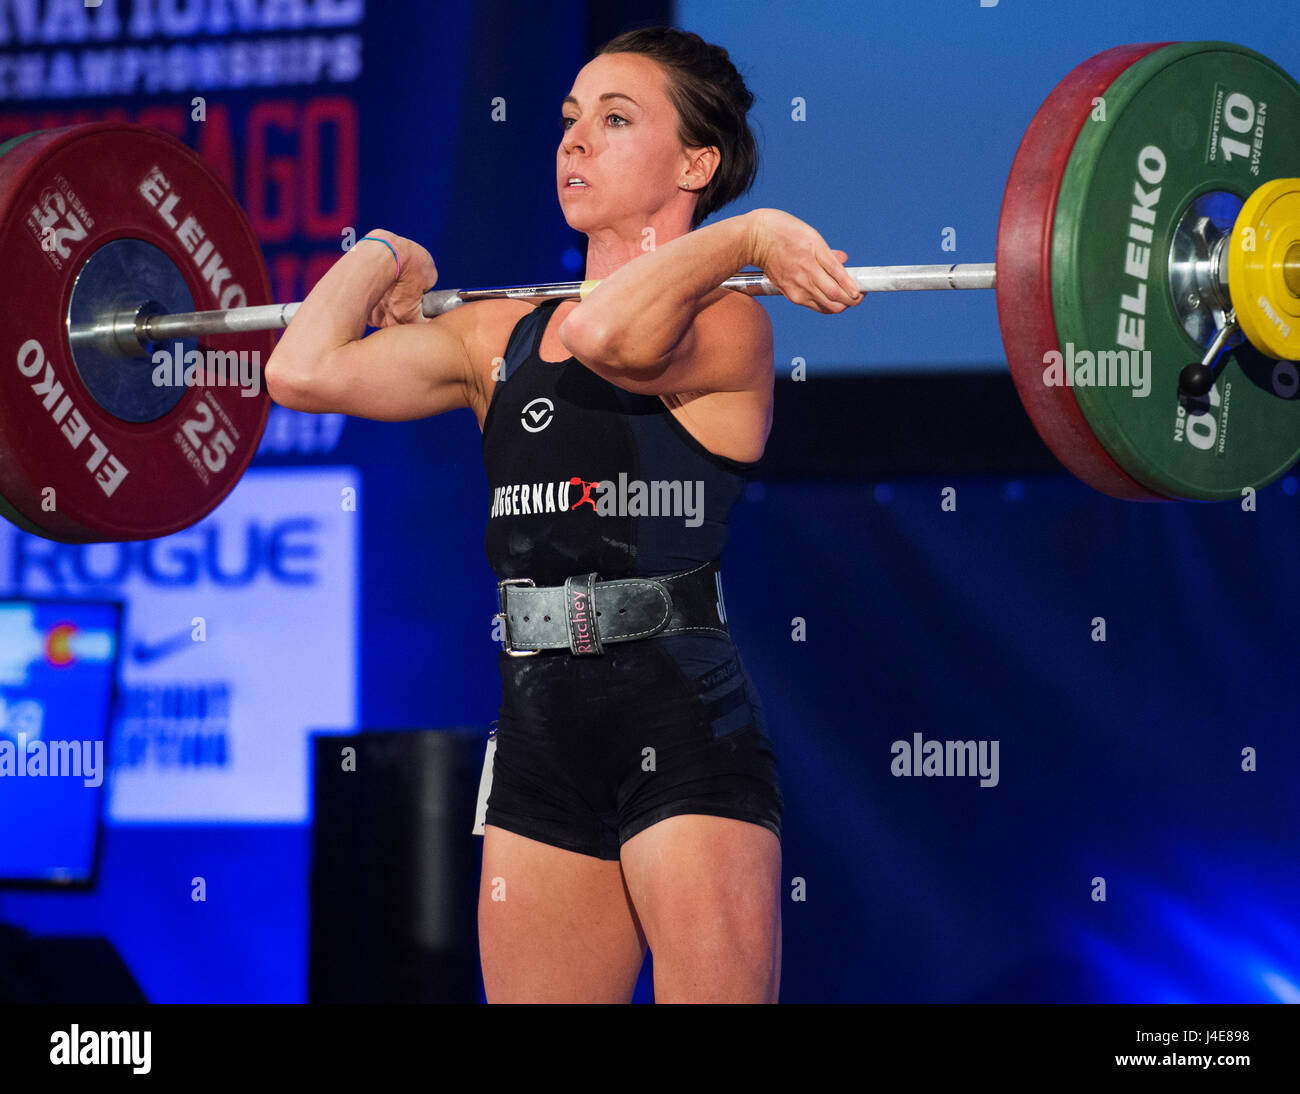 May 12, 2017: Alyssa Ritchey competes in the Womens 48kg. class at the USA Weightlifting National Championships - Stock Image